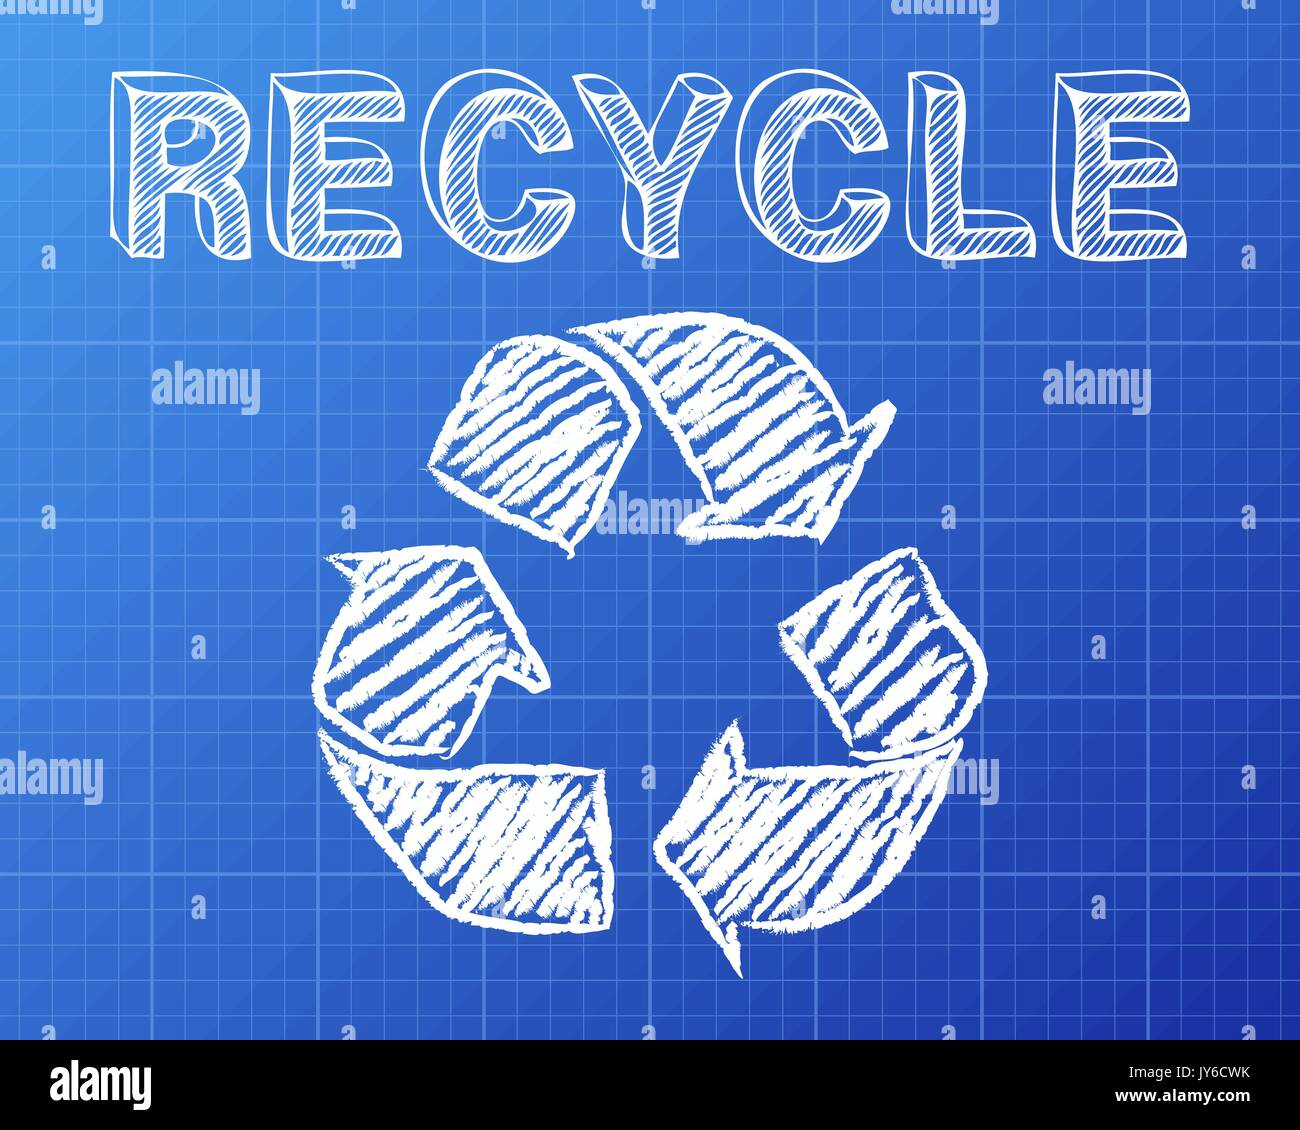 Recycle symbol and word drawn on blueprint background stock vector recycle symbol and word drawn on blueprint background malvernweather Gallery